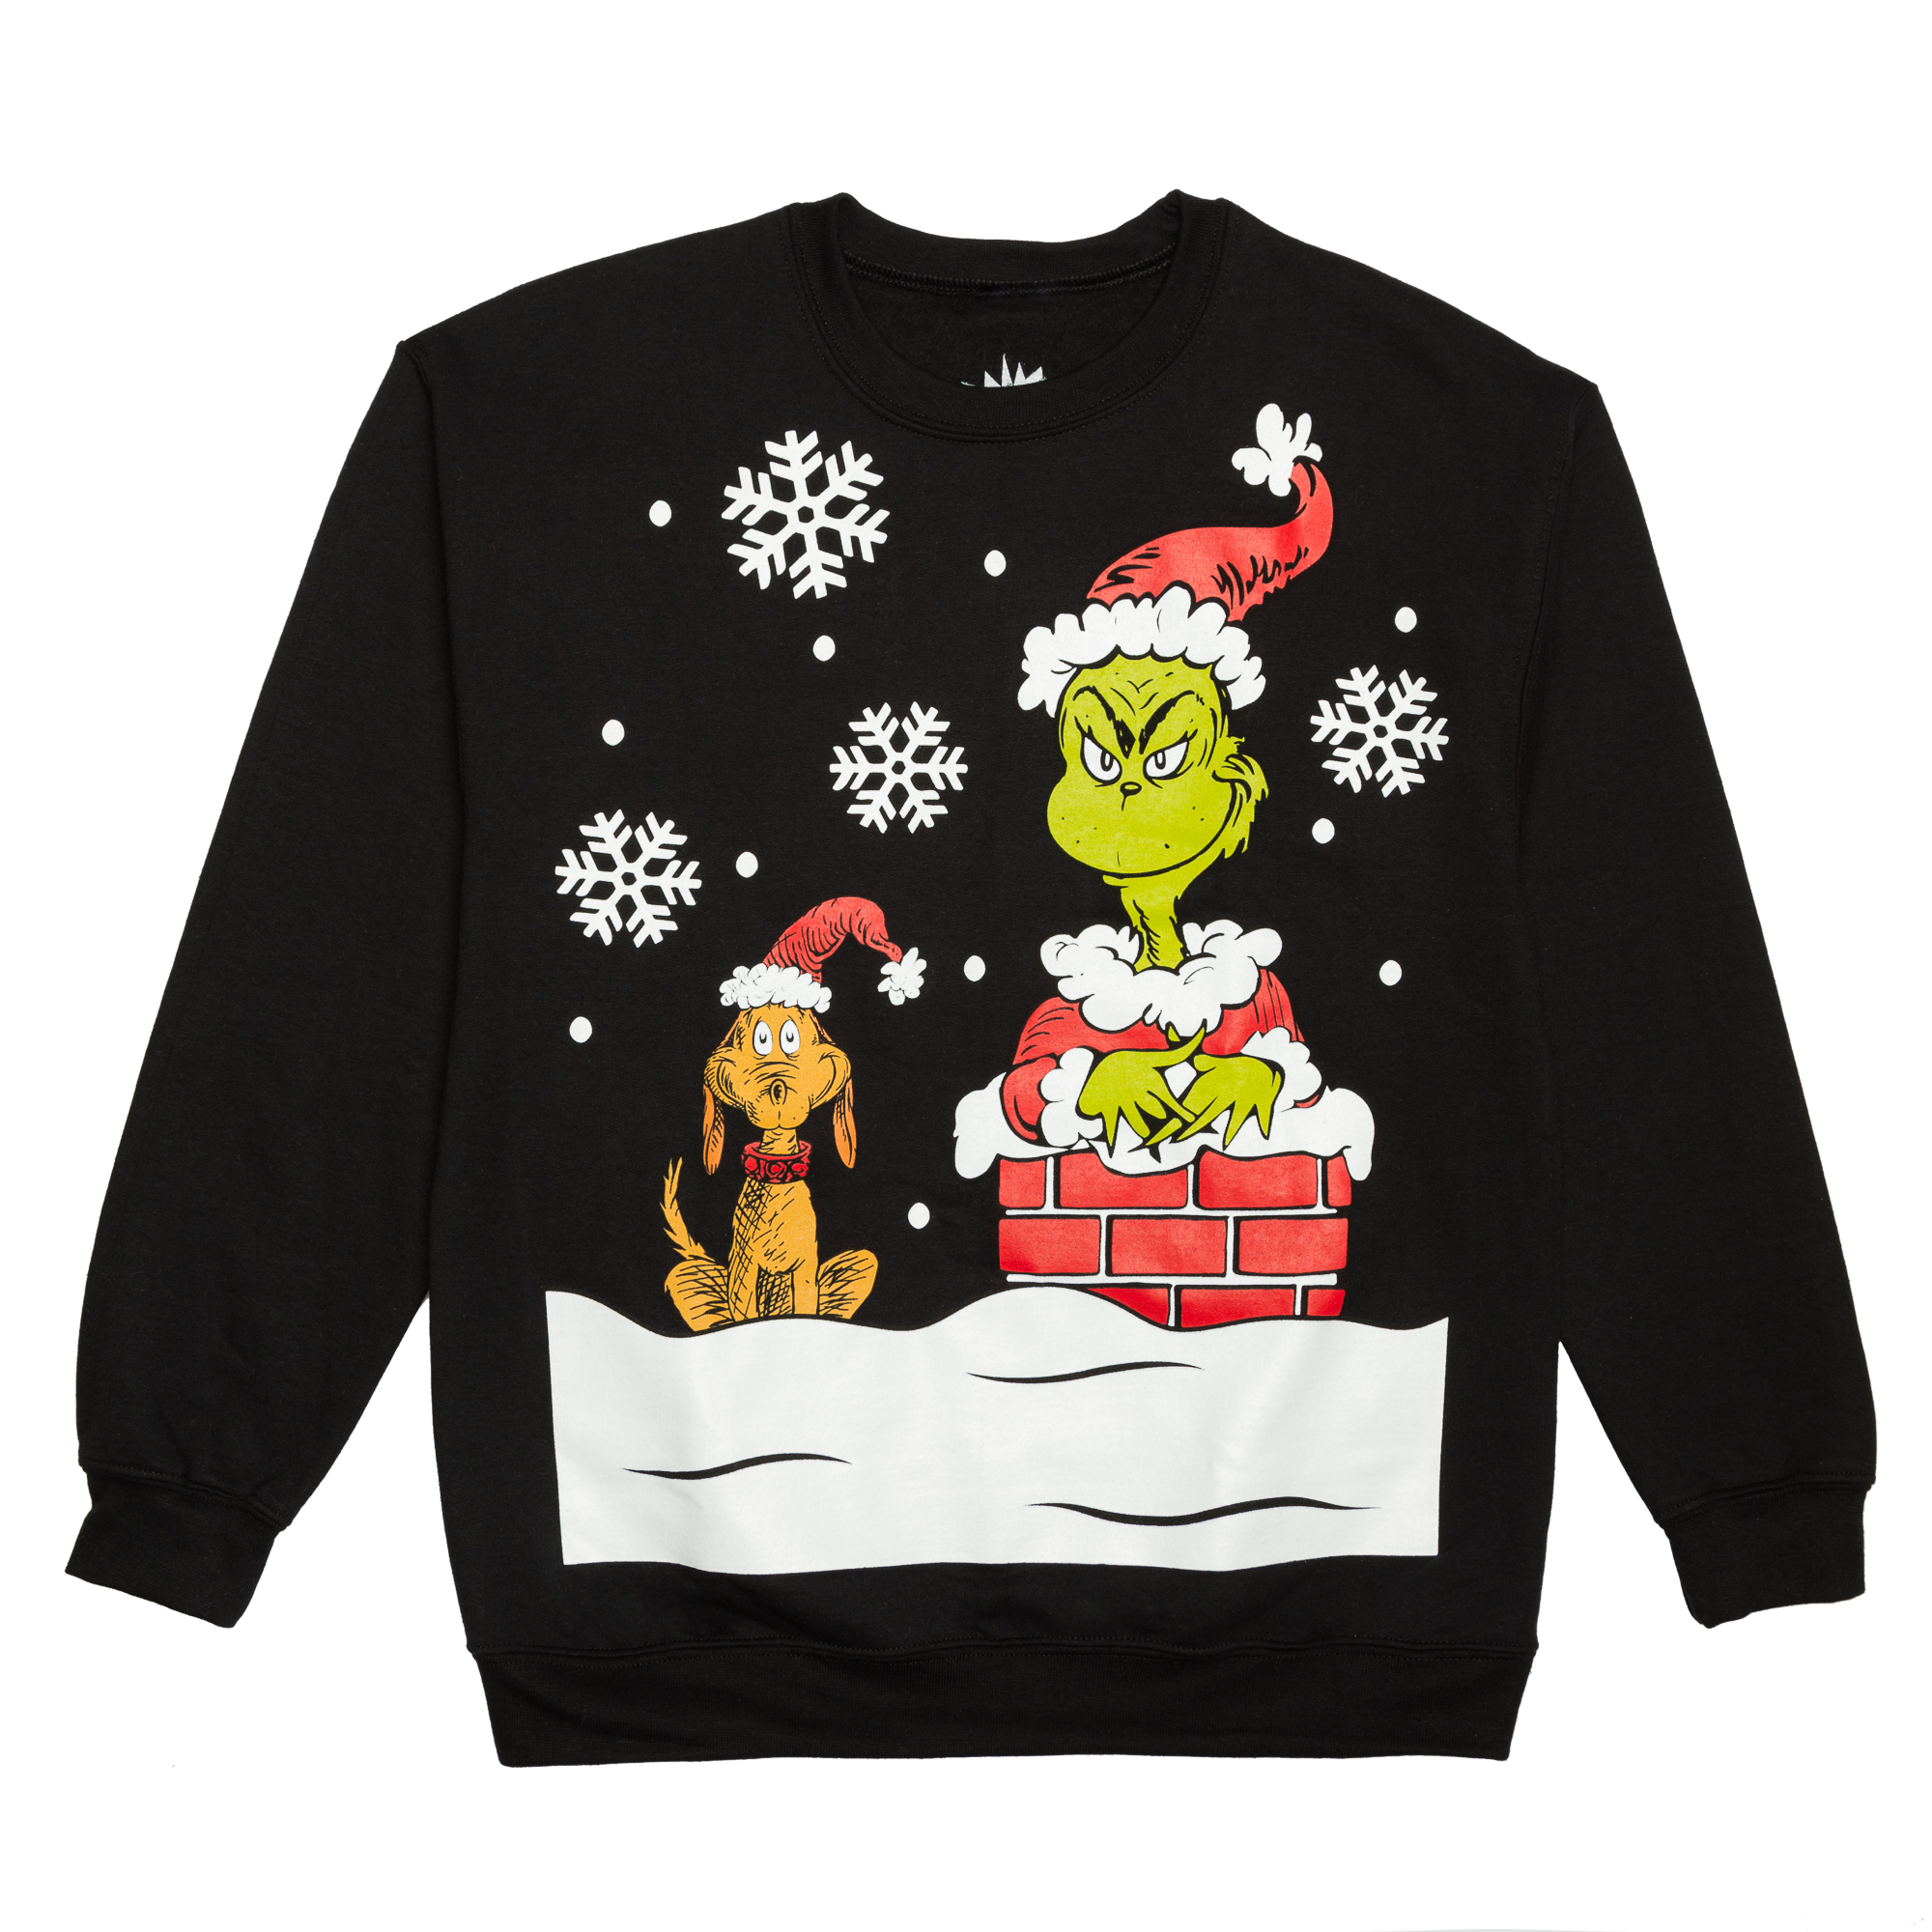 How The Grinch Stole Christmas Sweater Collections Holidays